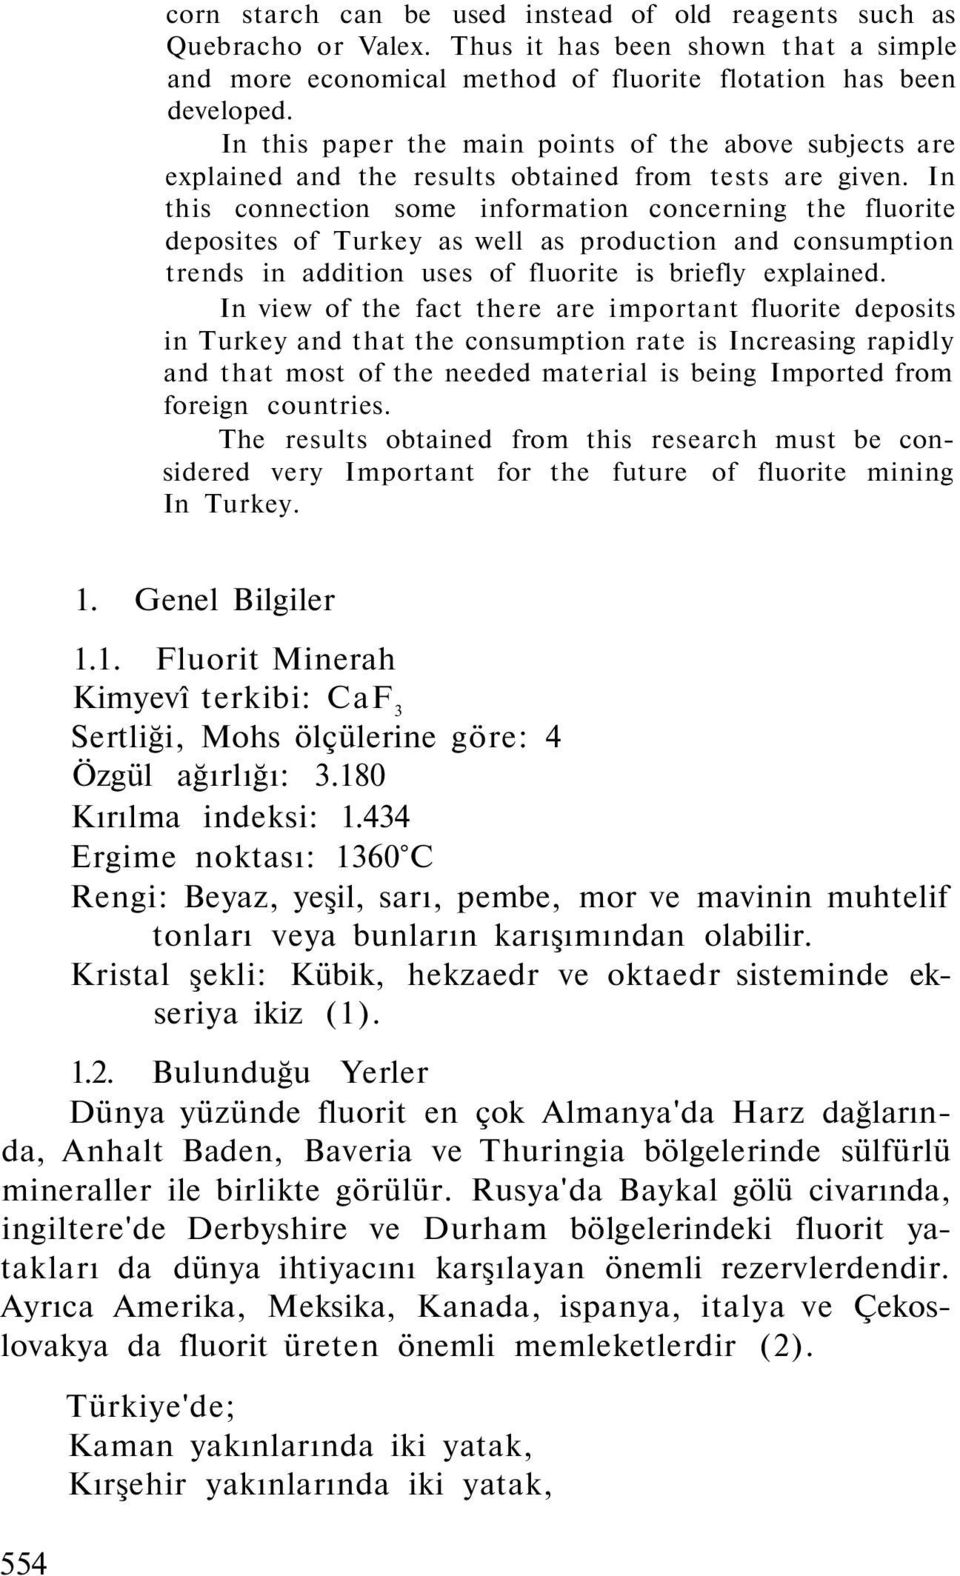 In this connection some information concerning the fluorite deposites of Turkey as well as production and consumption trends in addition uses of fluorite is briefly explained.